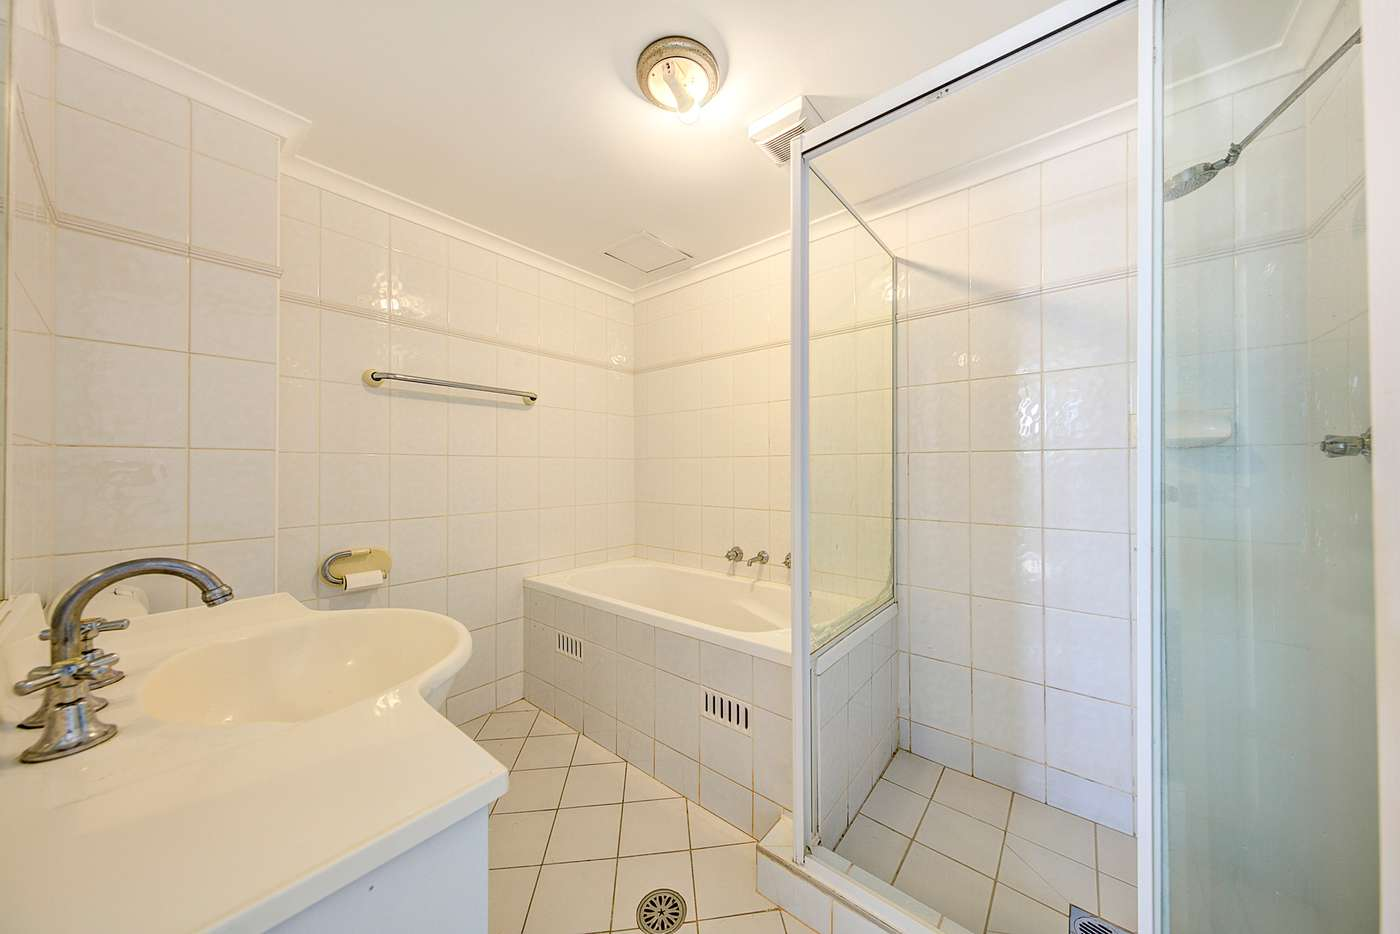 Sixth view of Homely apartment listing, 23/9-15 May Street, Hornsby NSW 2077